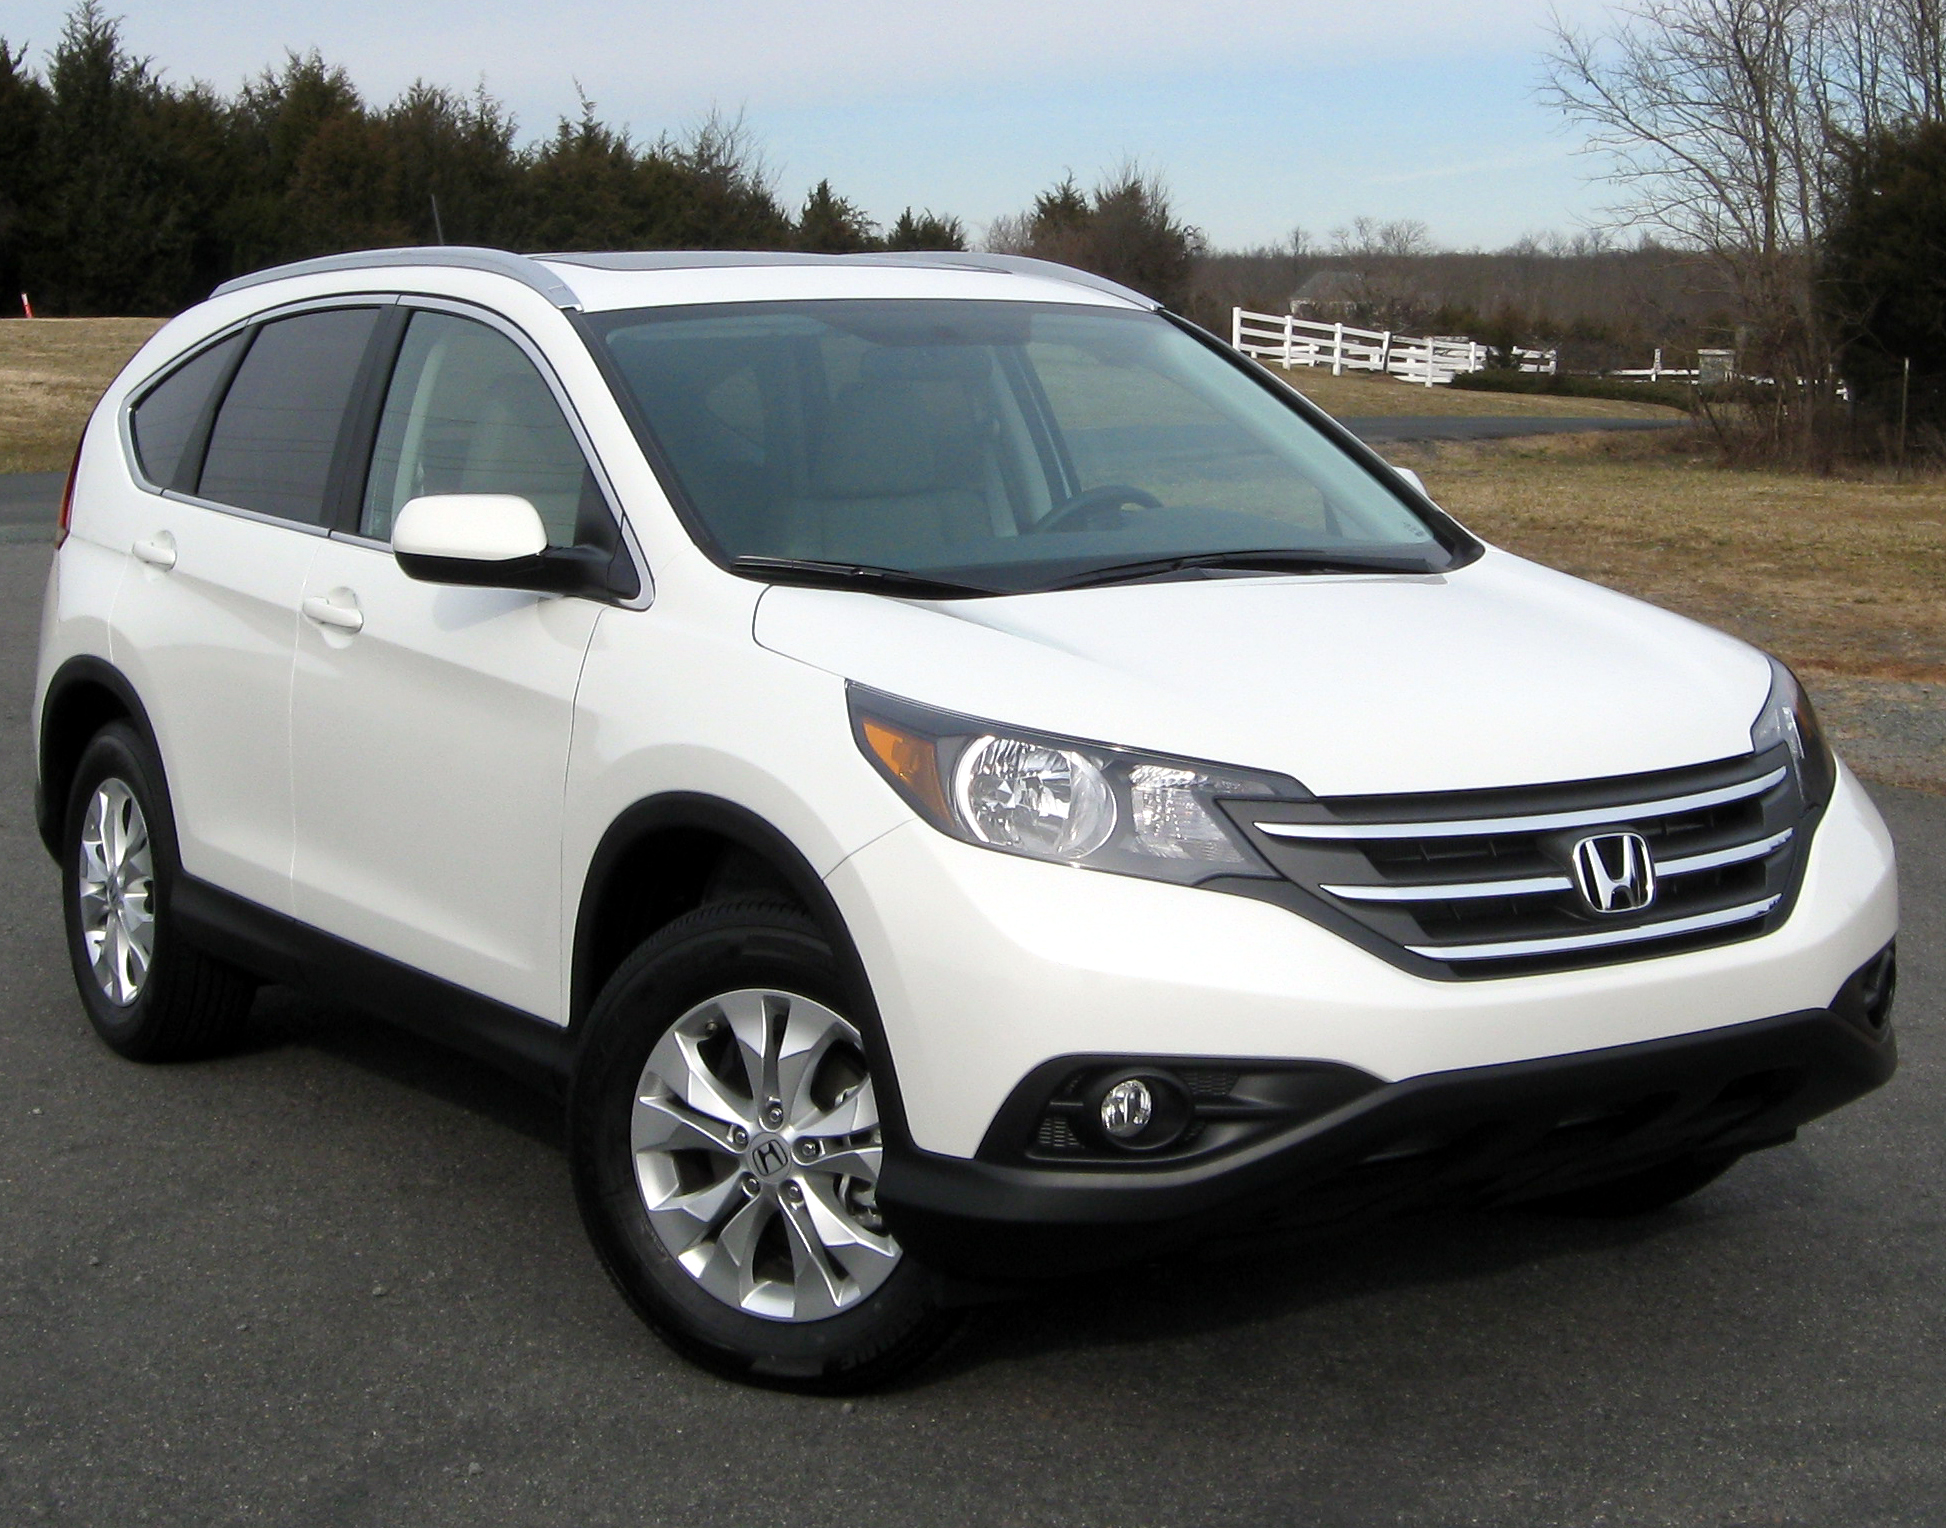 Honda cr v reviews honda cr v car reviews for B1 honda service